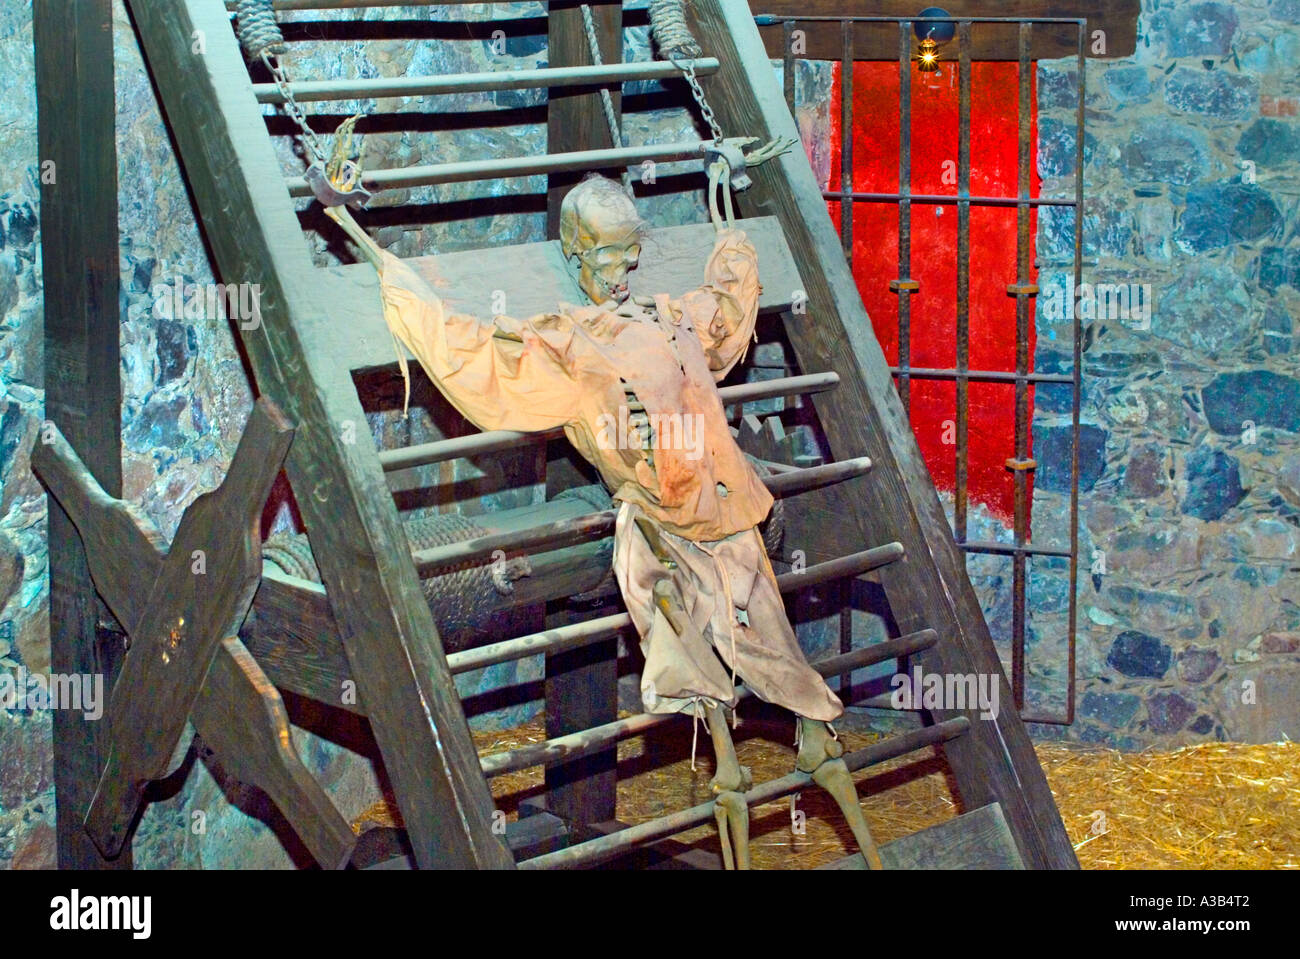 Torture scene at the Museum of the Inquisition Guanajuato Mexico - Stock Image